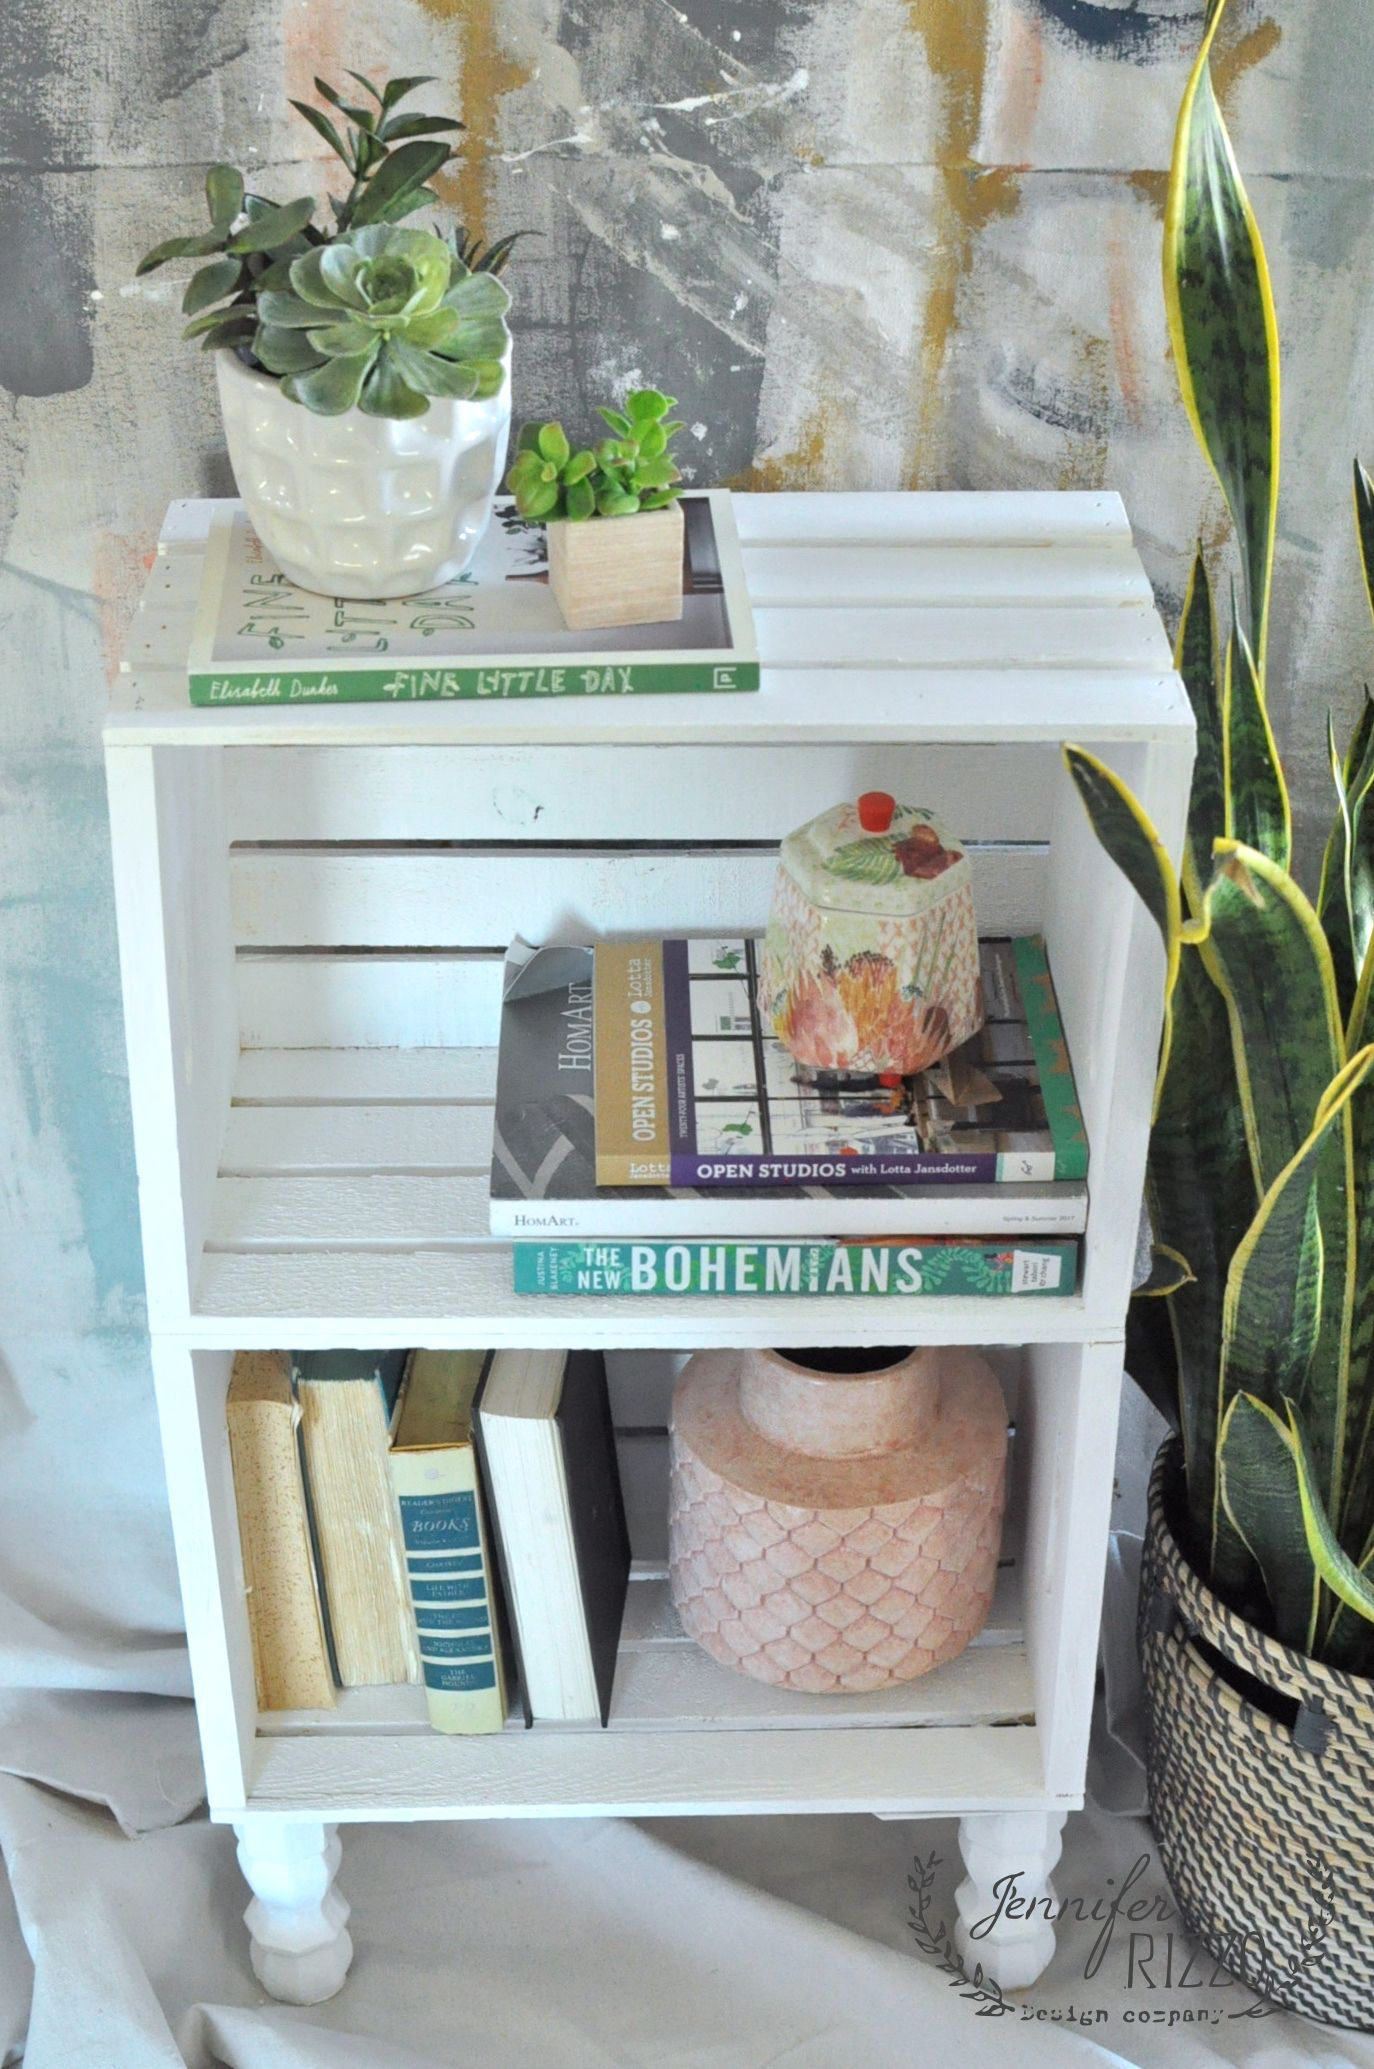 diy crate side table for easy storage eclectic craft decor rustic corner accent love this idea using crates make fast and inexpensive book case old dining drop leaf with folding